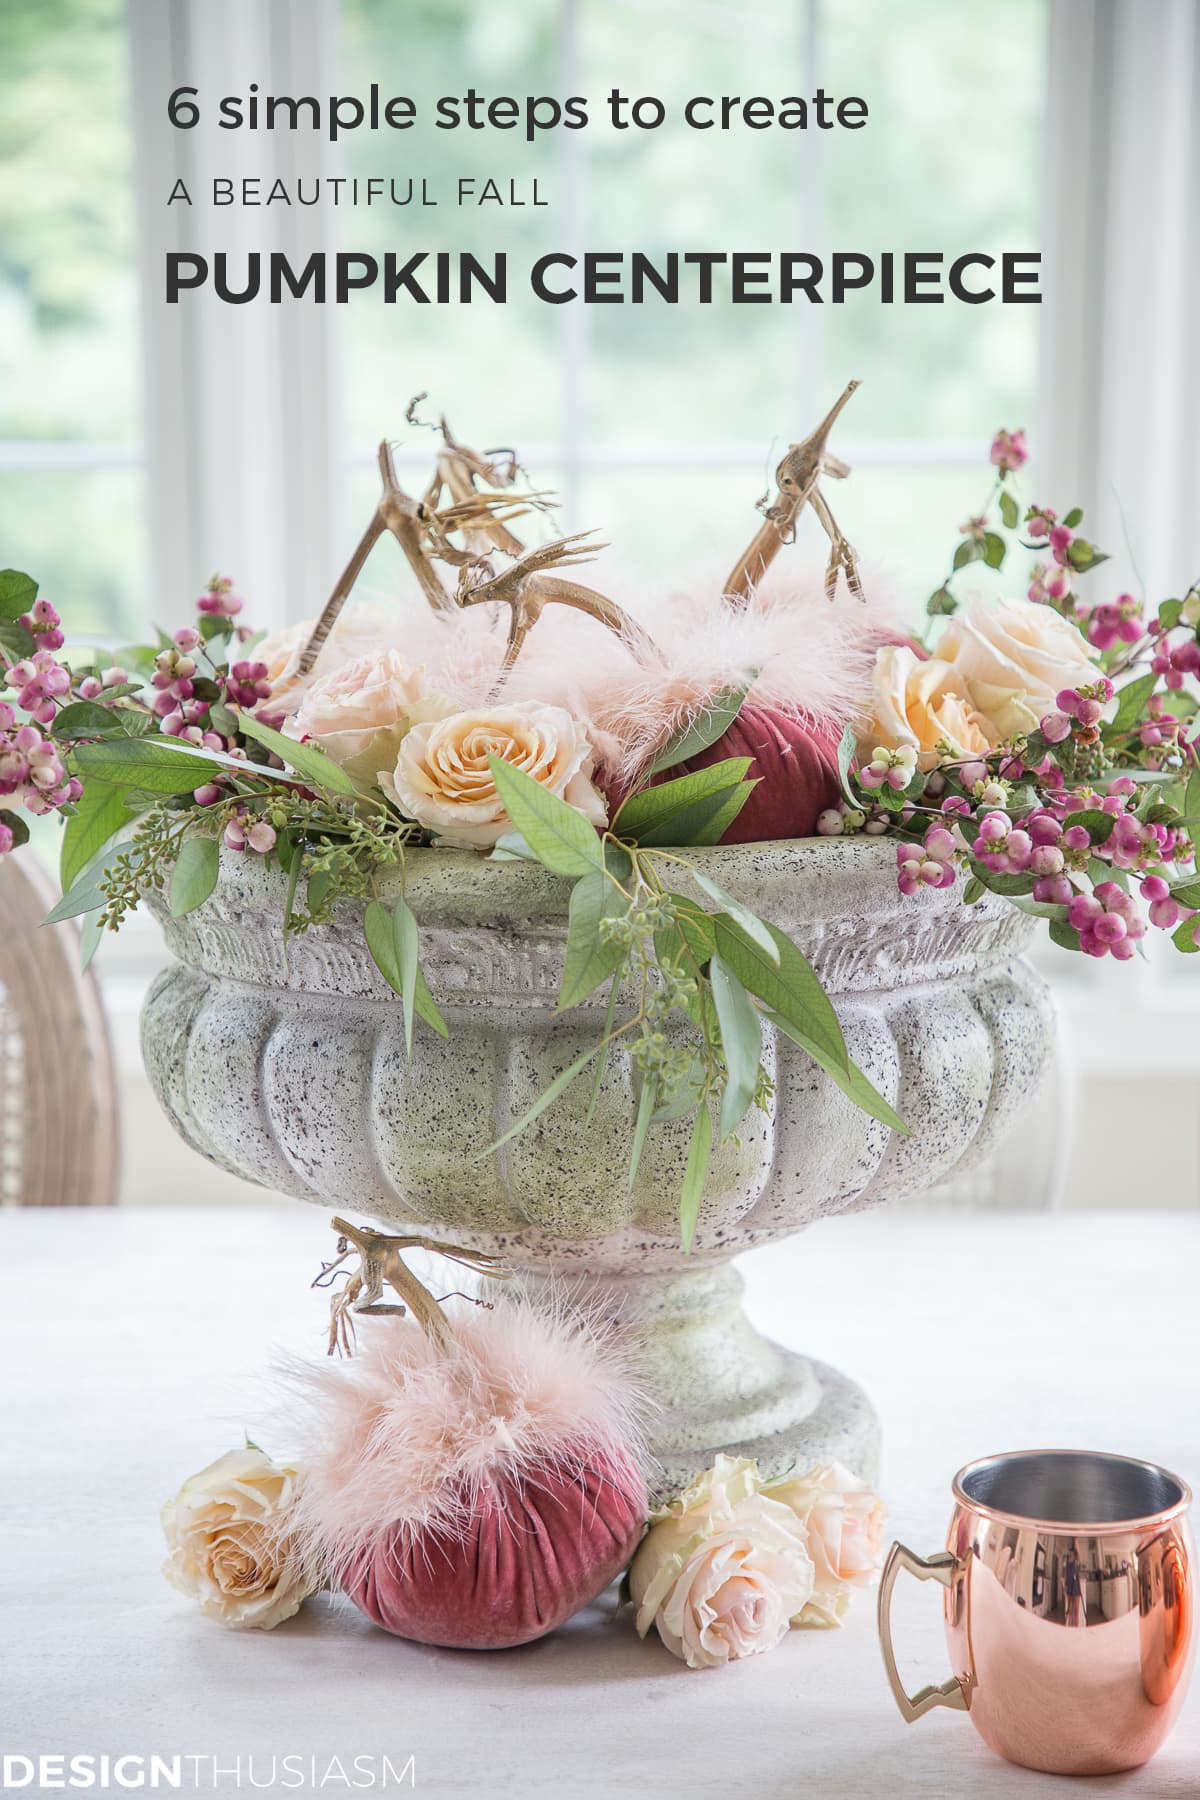 Fall Centerpieces: 6 Easy Steps to Create a Beautiful Pumpkin Centerpiece